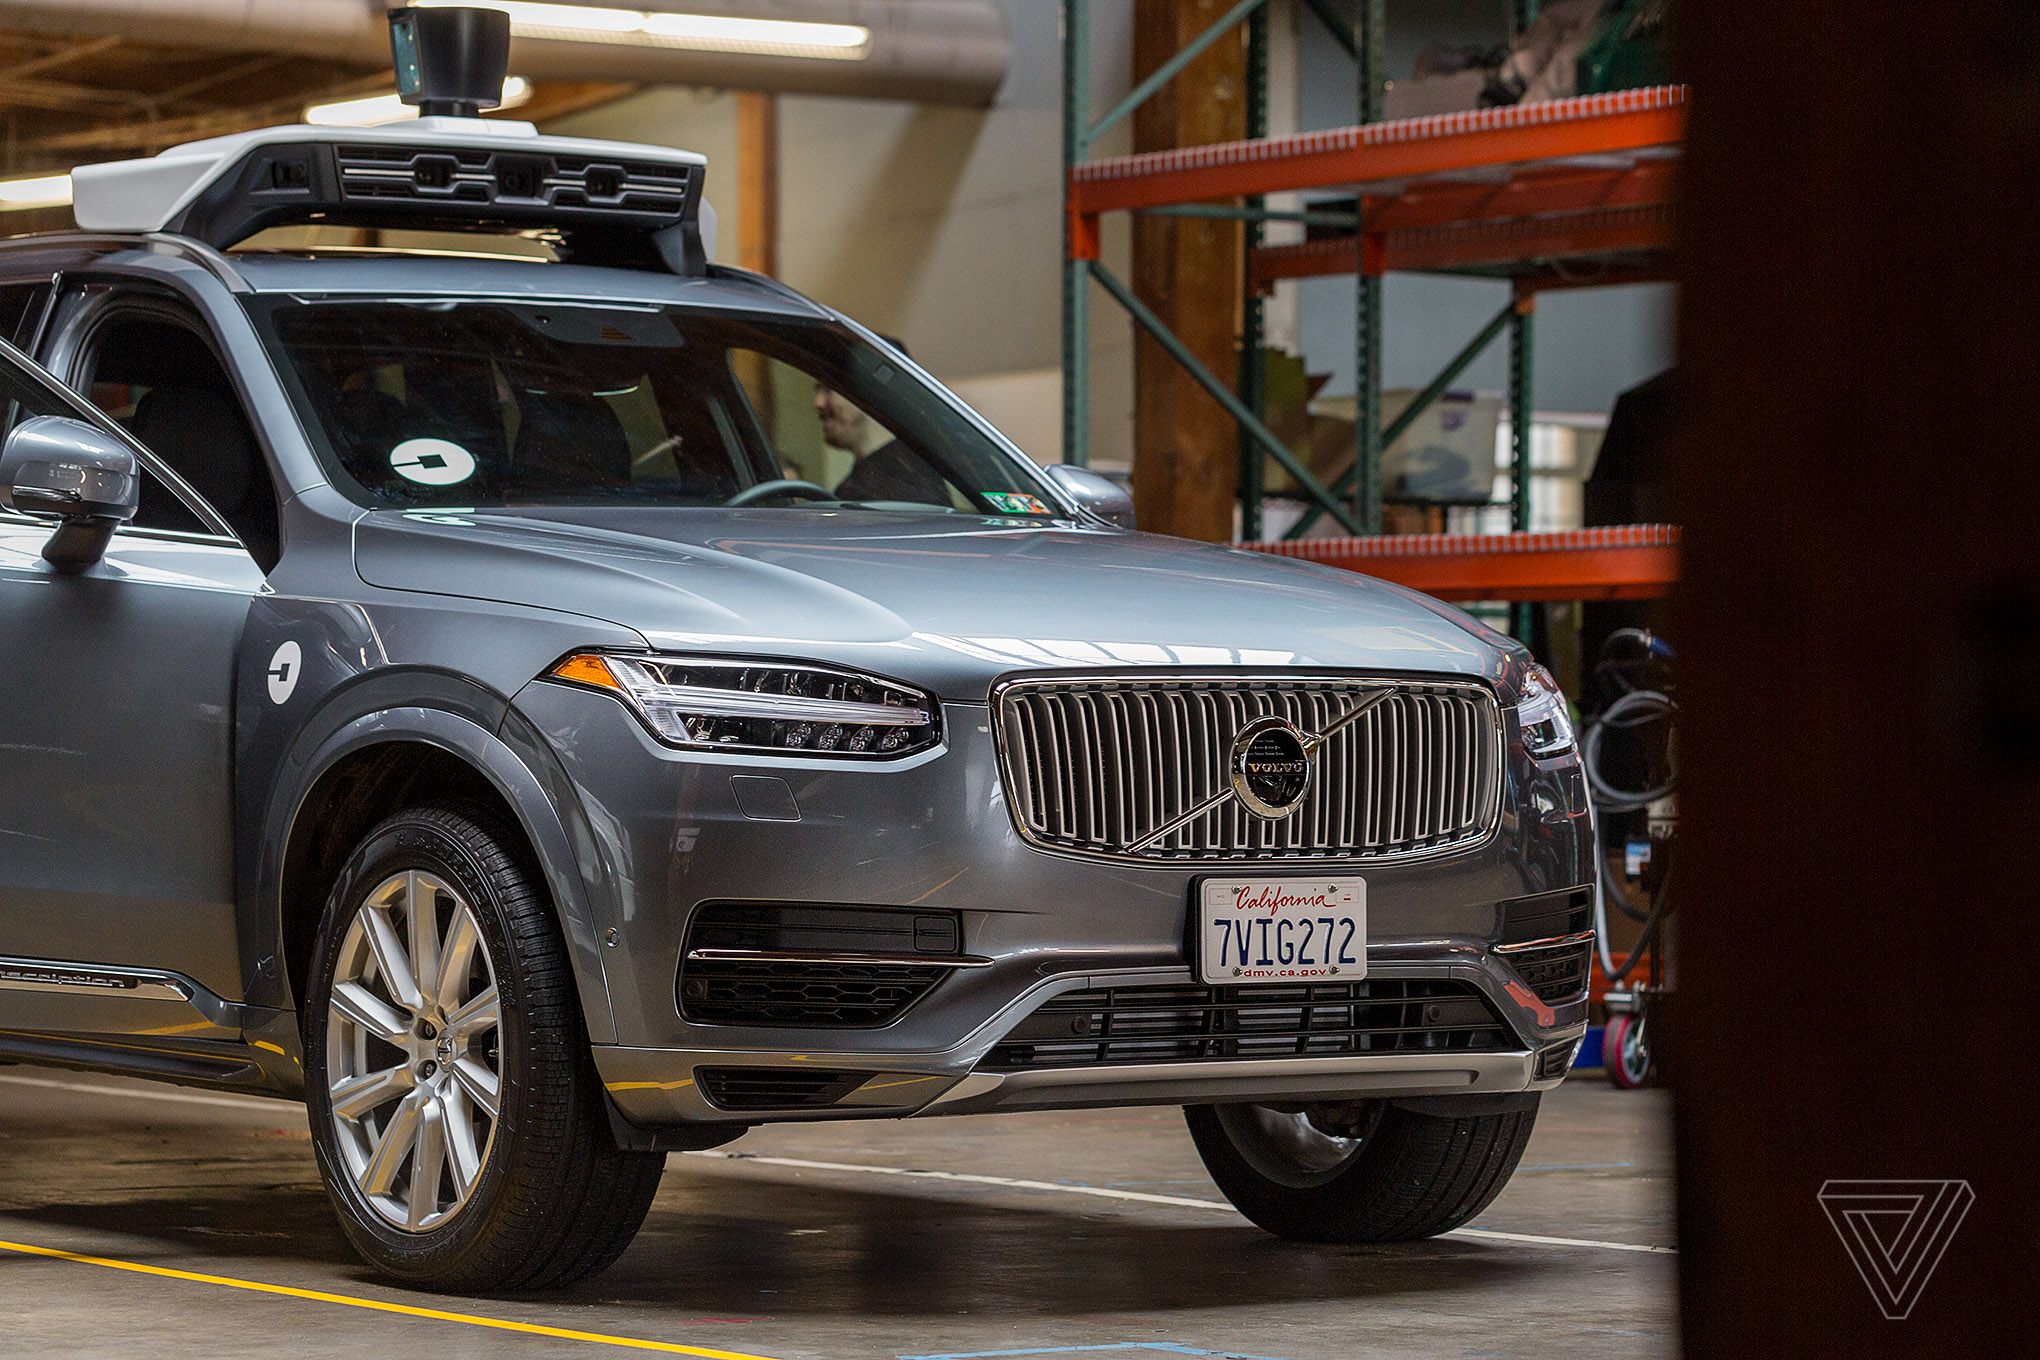 Uber won't renew its permit to test self-driving cars in